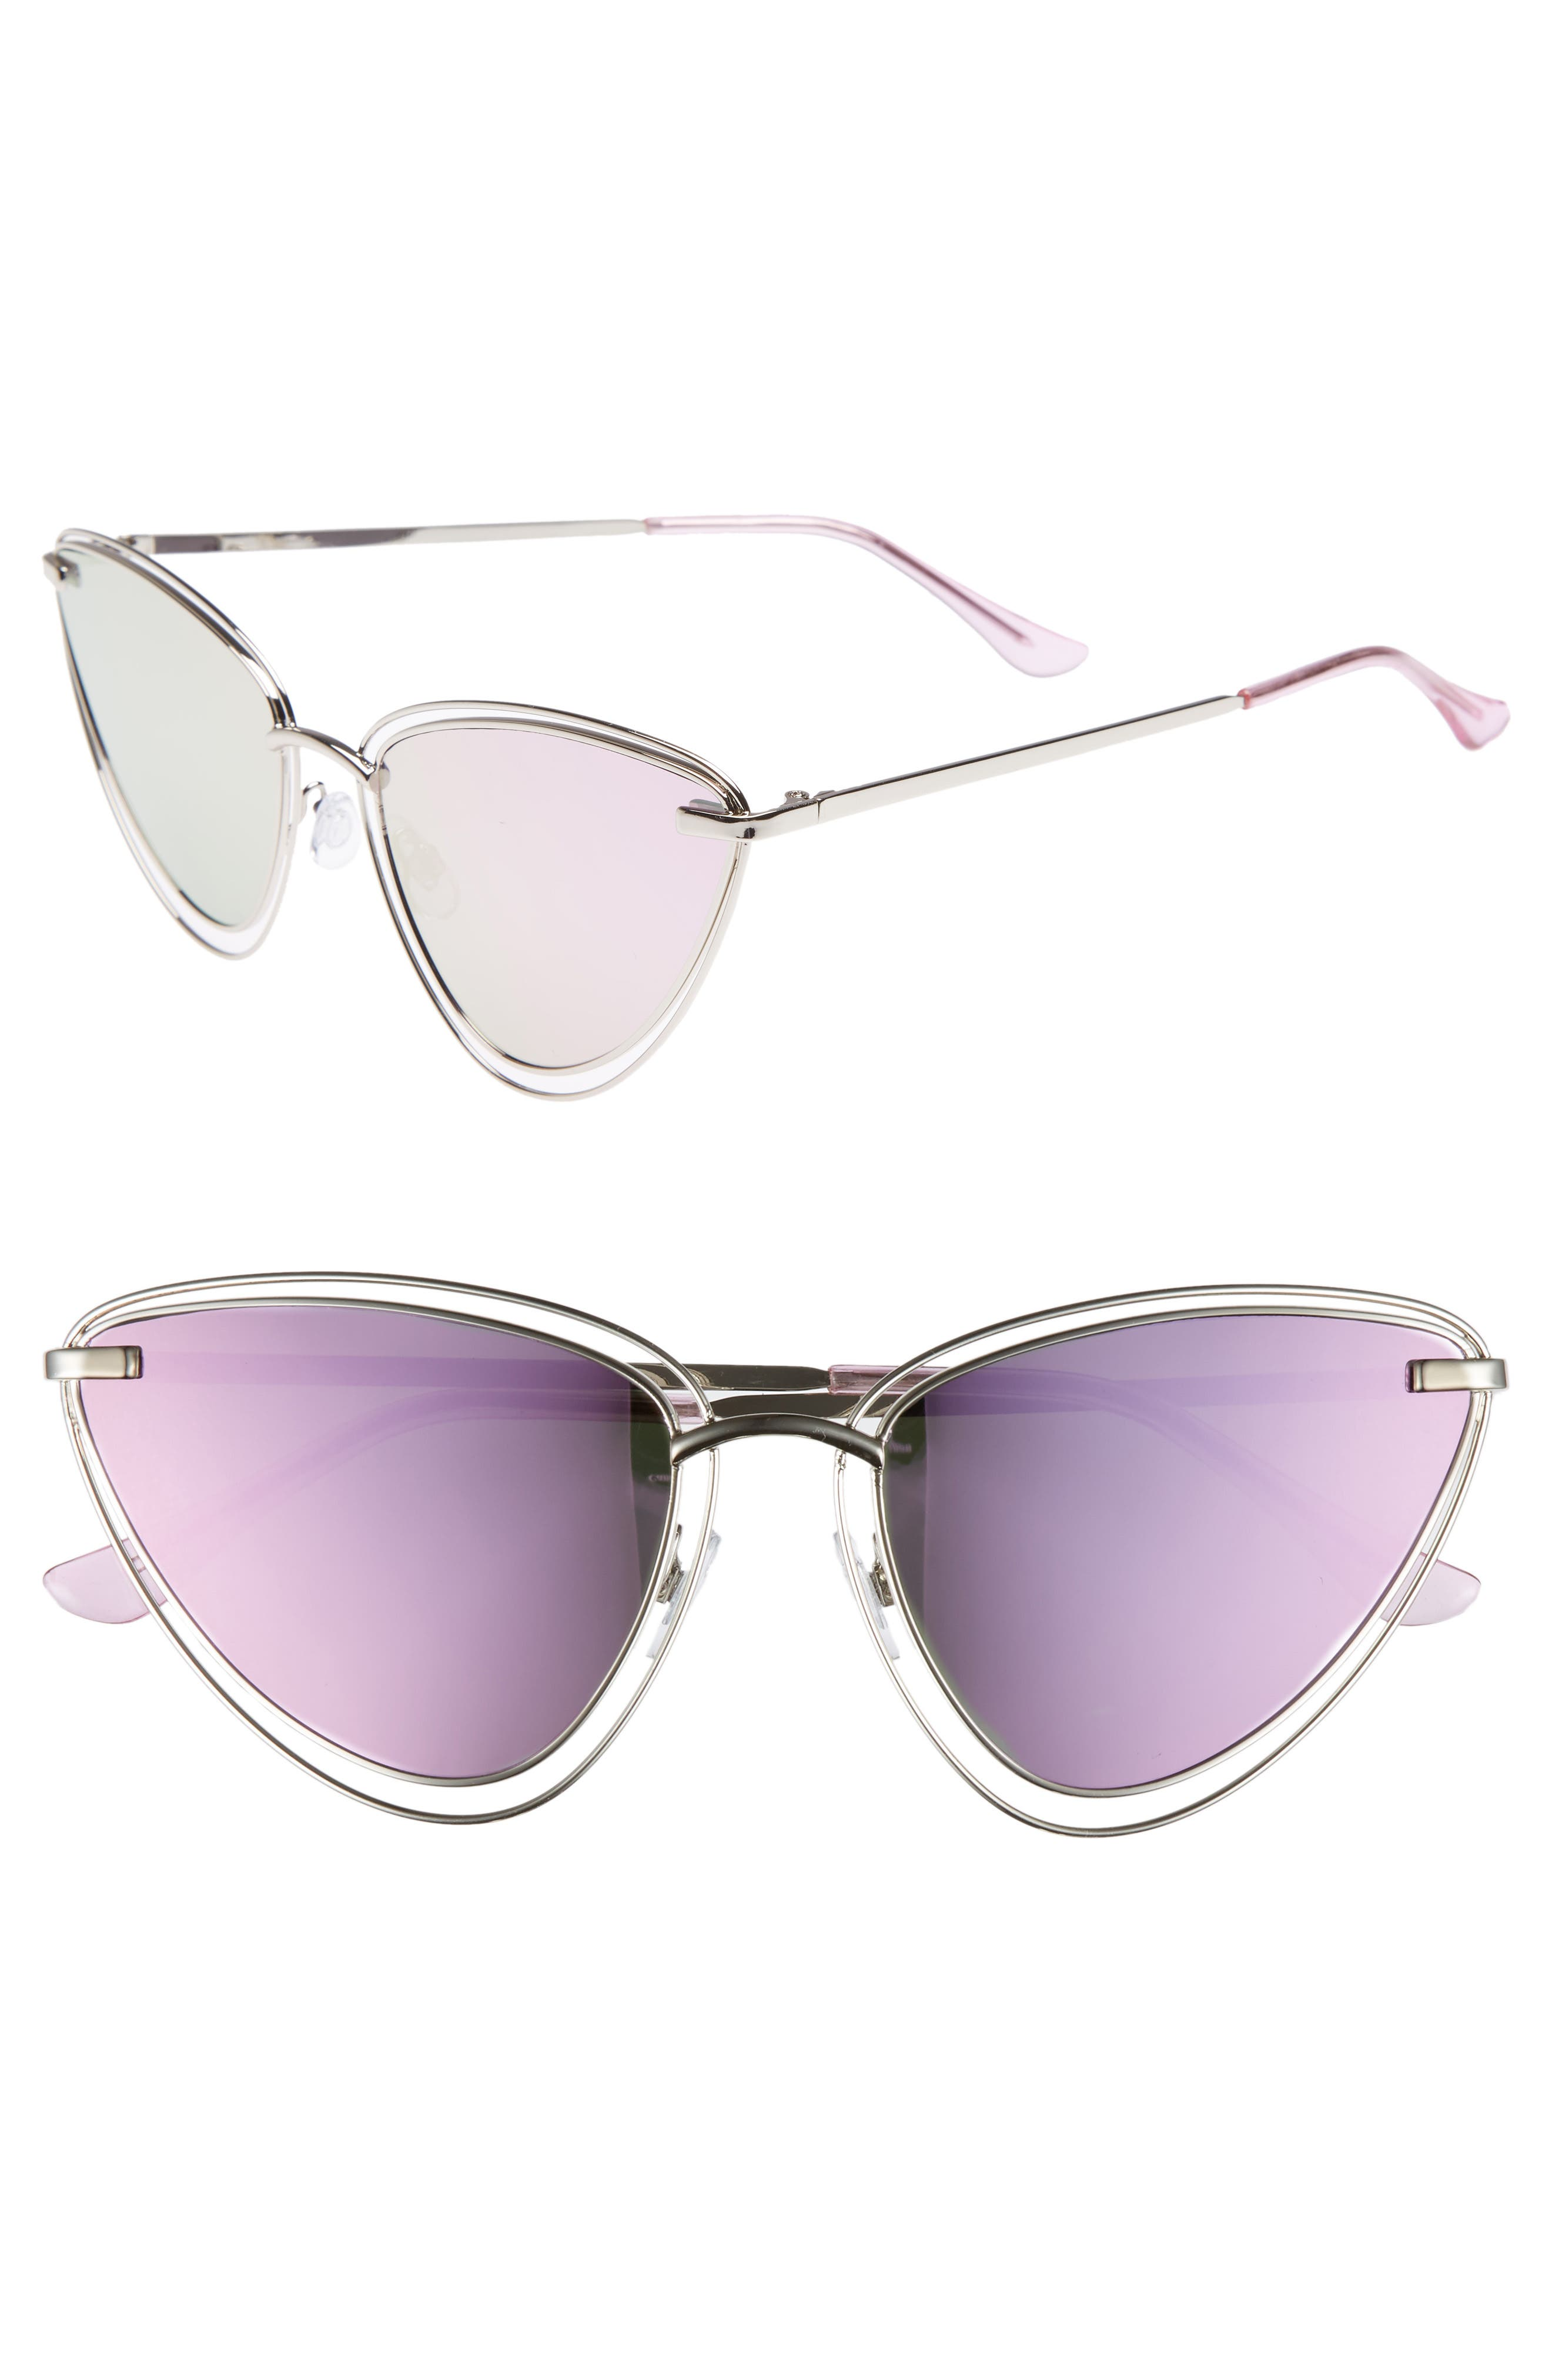 55mm Metal Cat Eye Sunglasses,                             Main thumbnail 1, color,                             Silver/ Purple